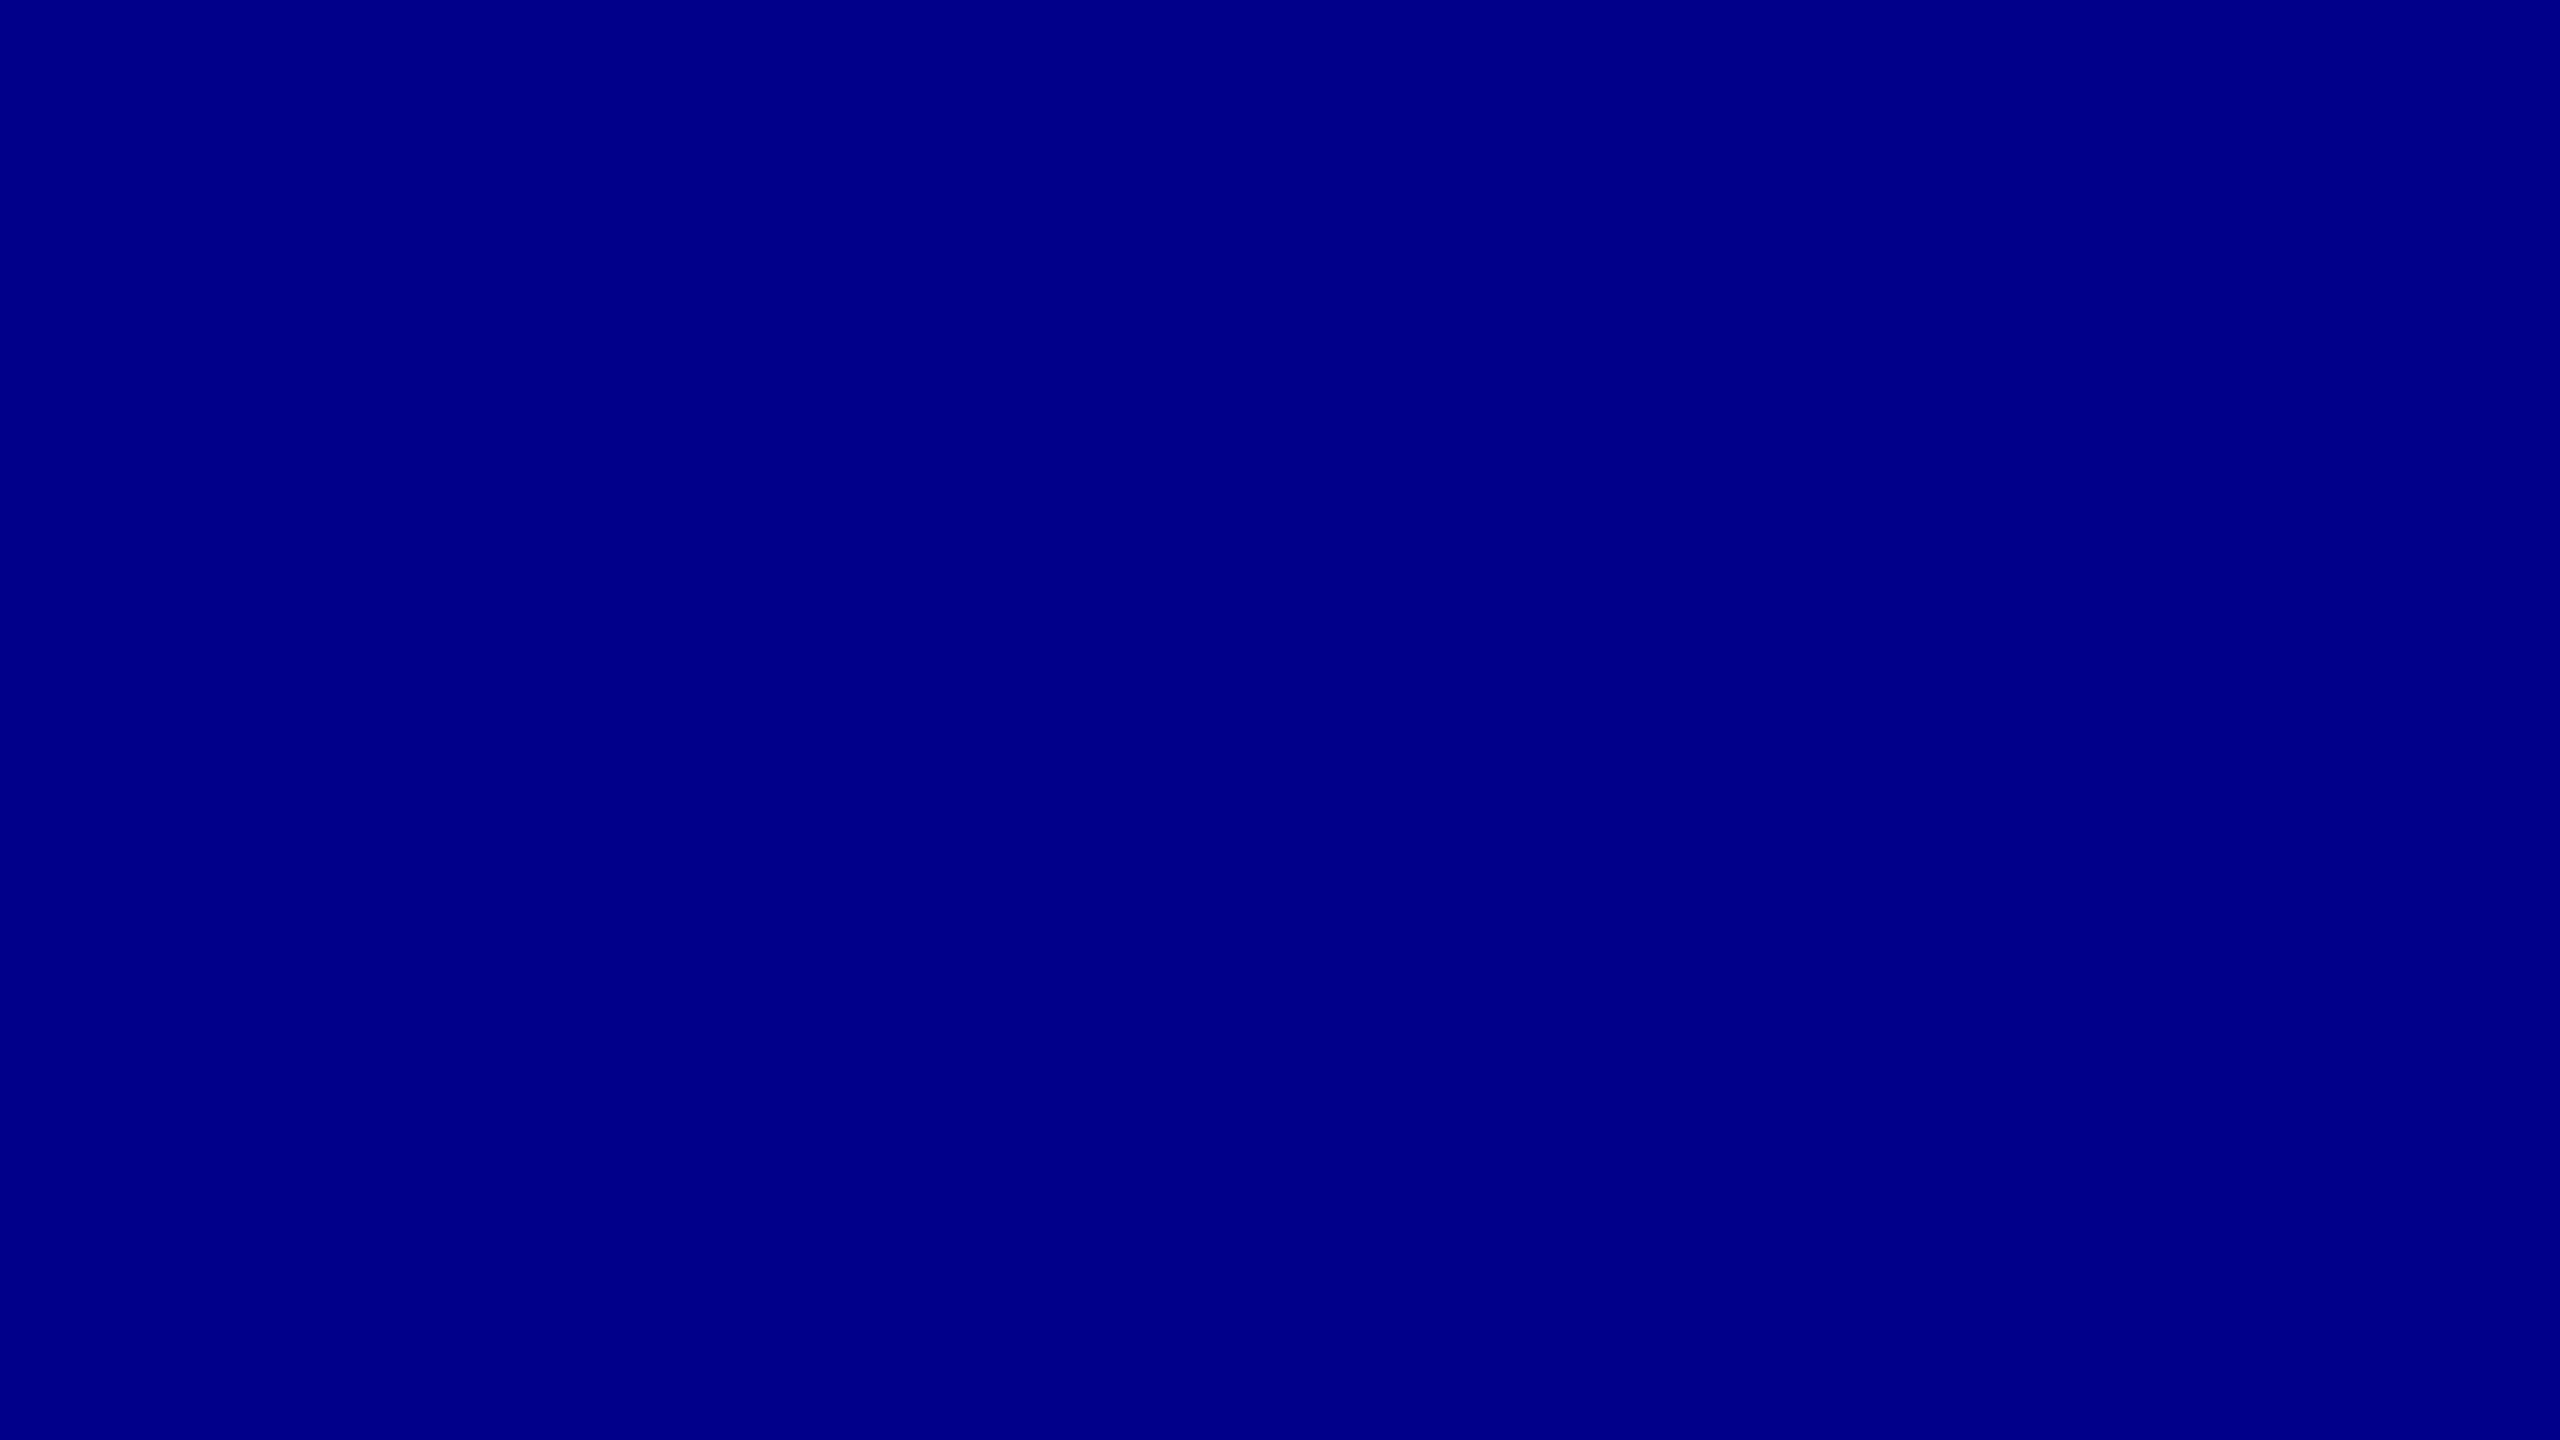 2560x1440 Dark Blue Solid Color Backgrounds